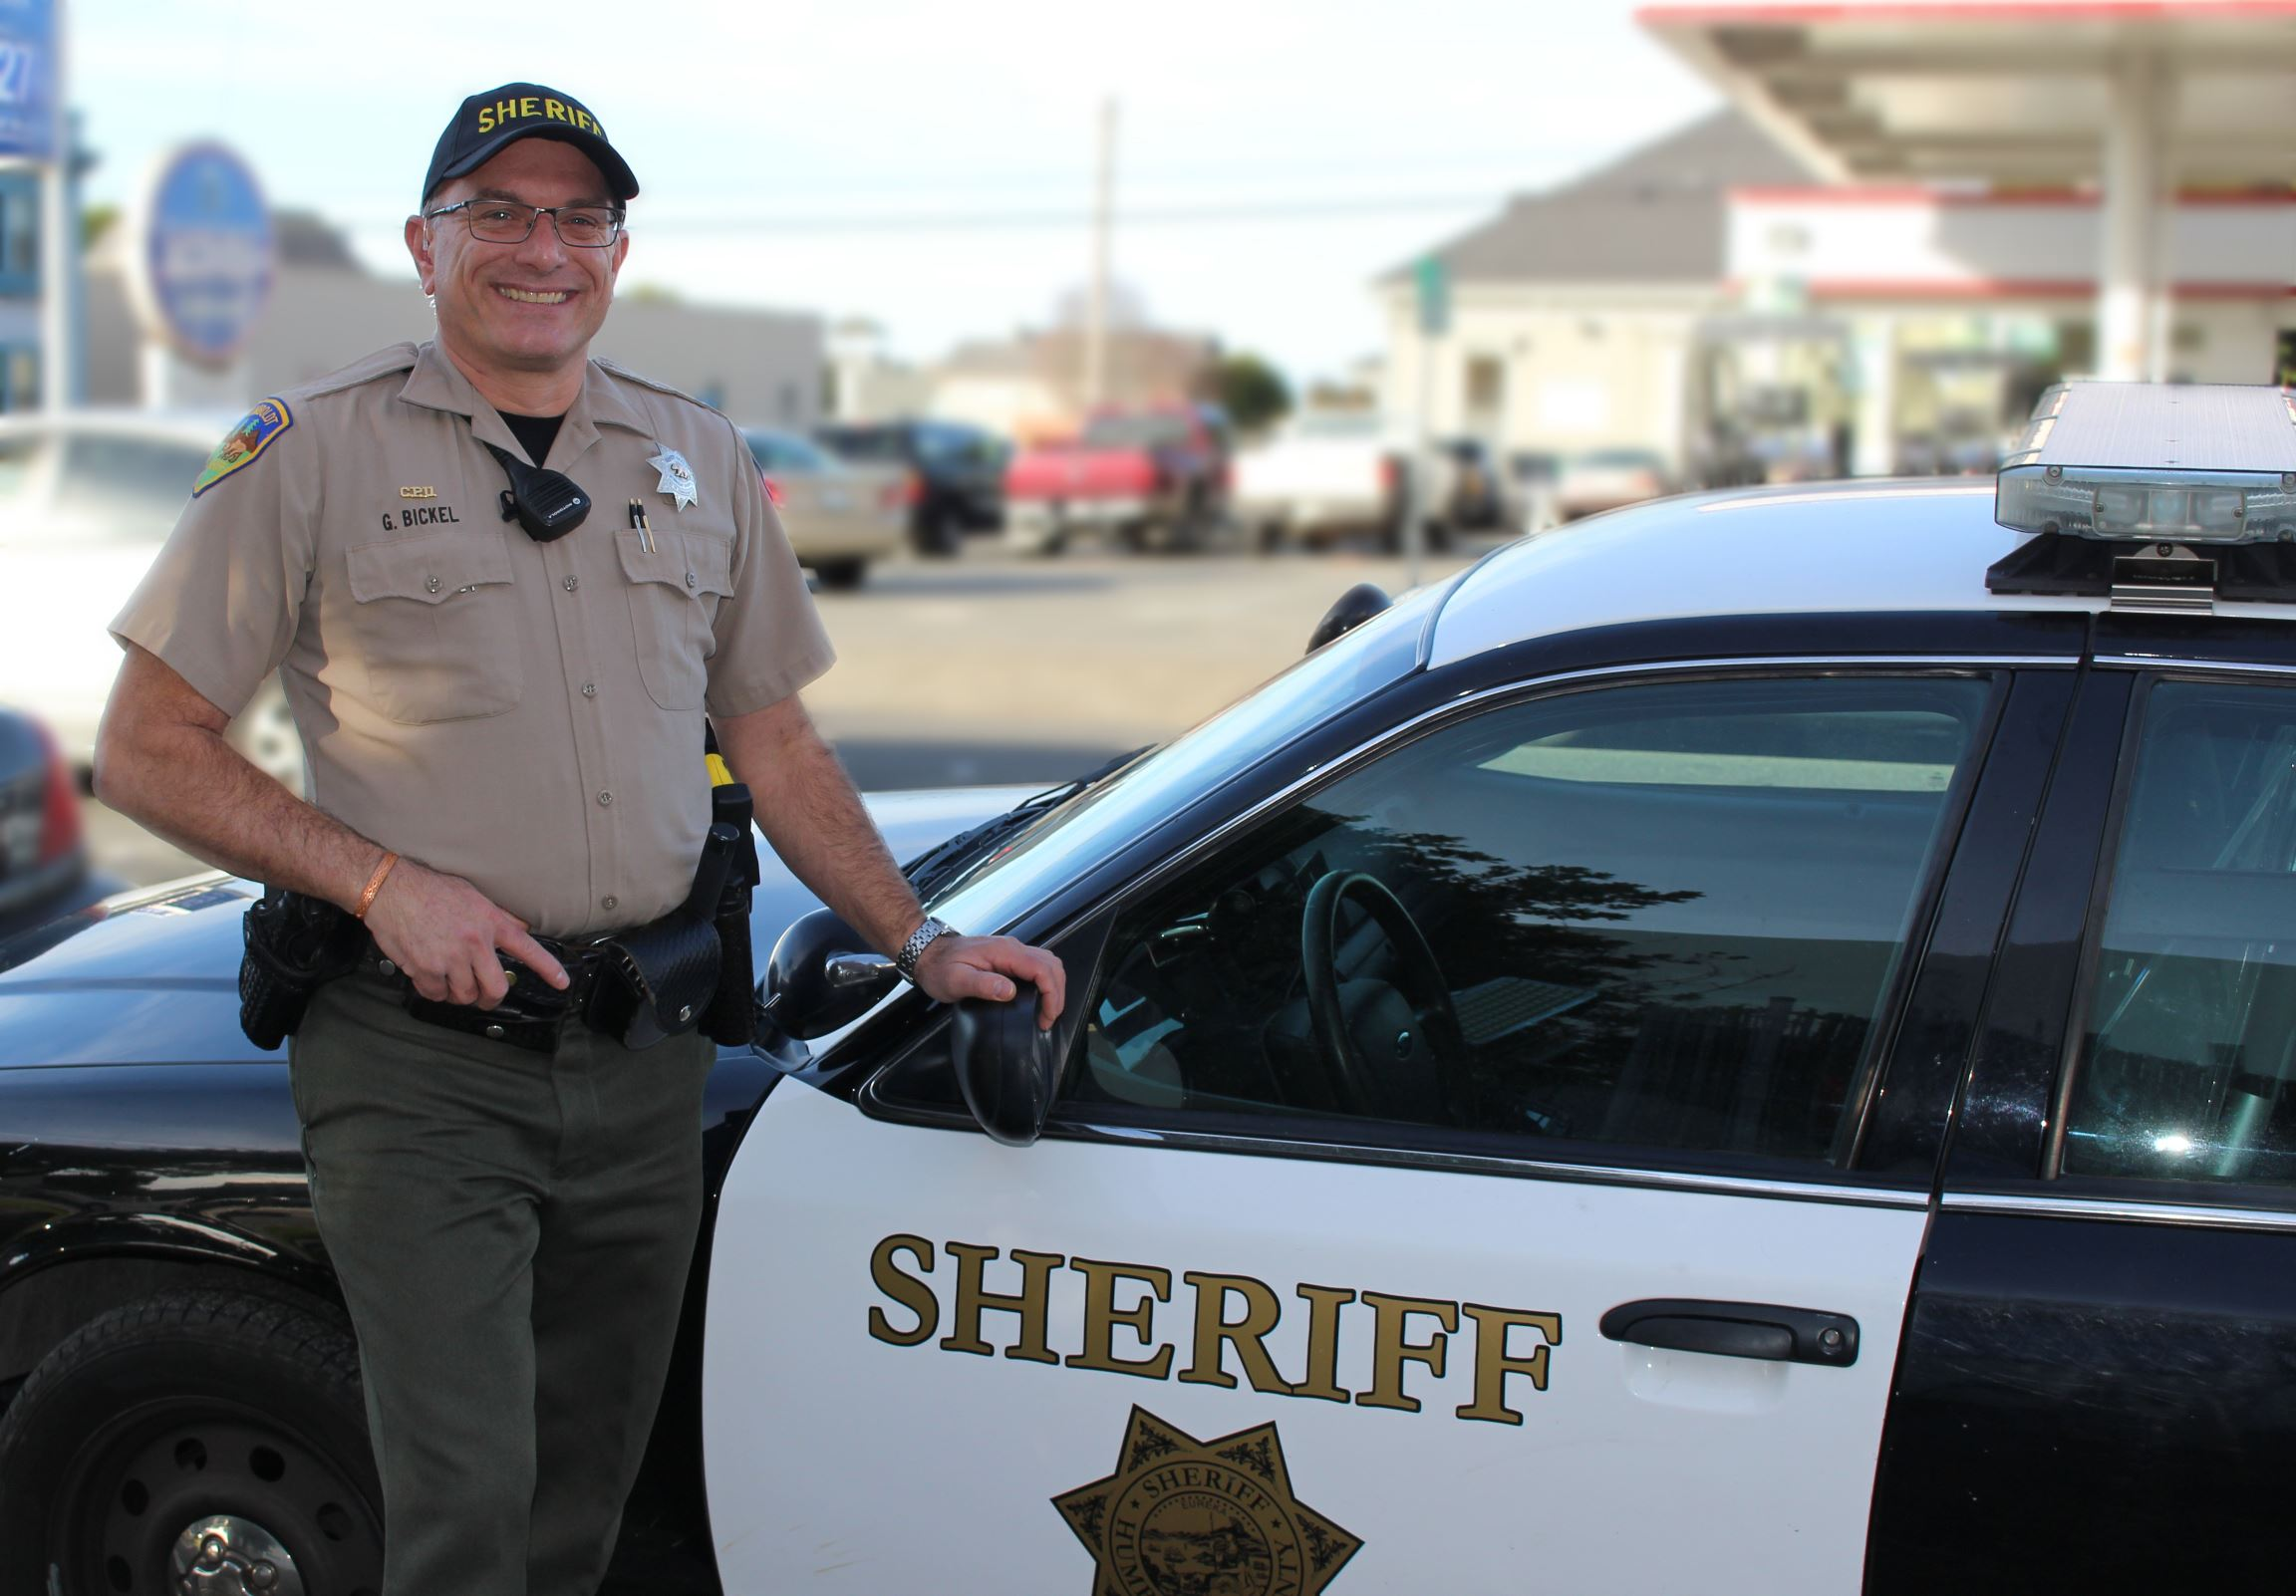 Deputy Bickel Photo